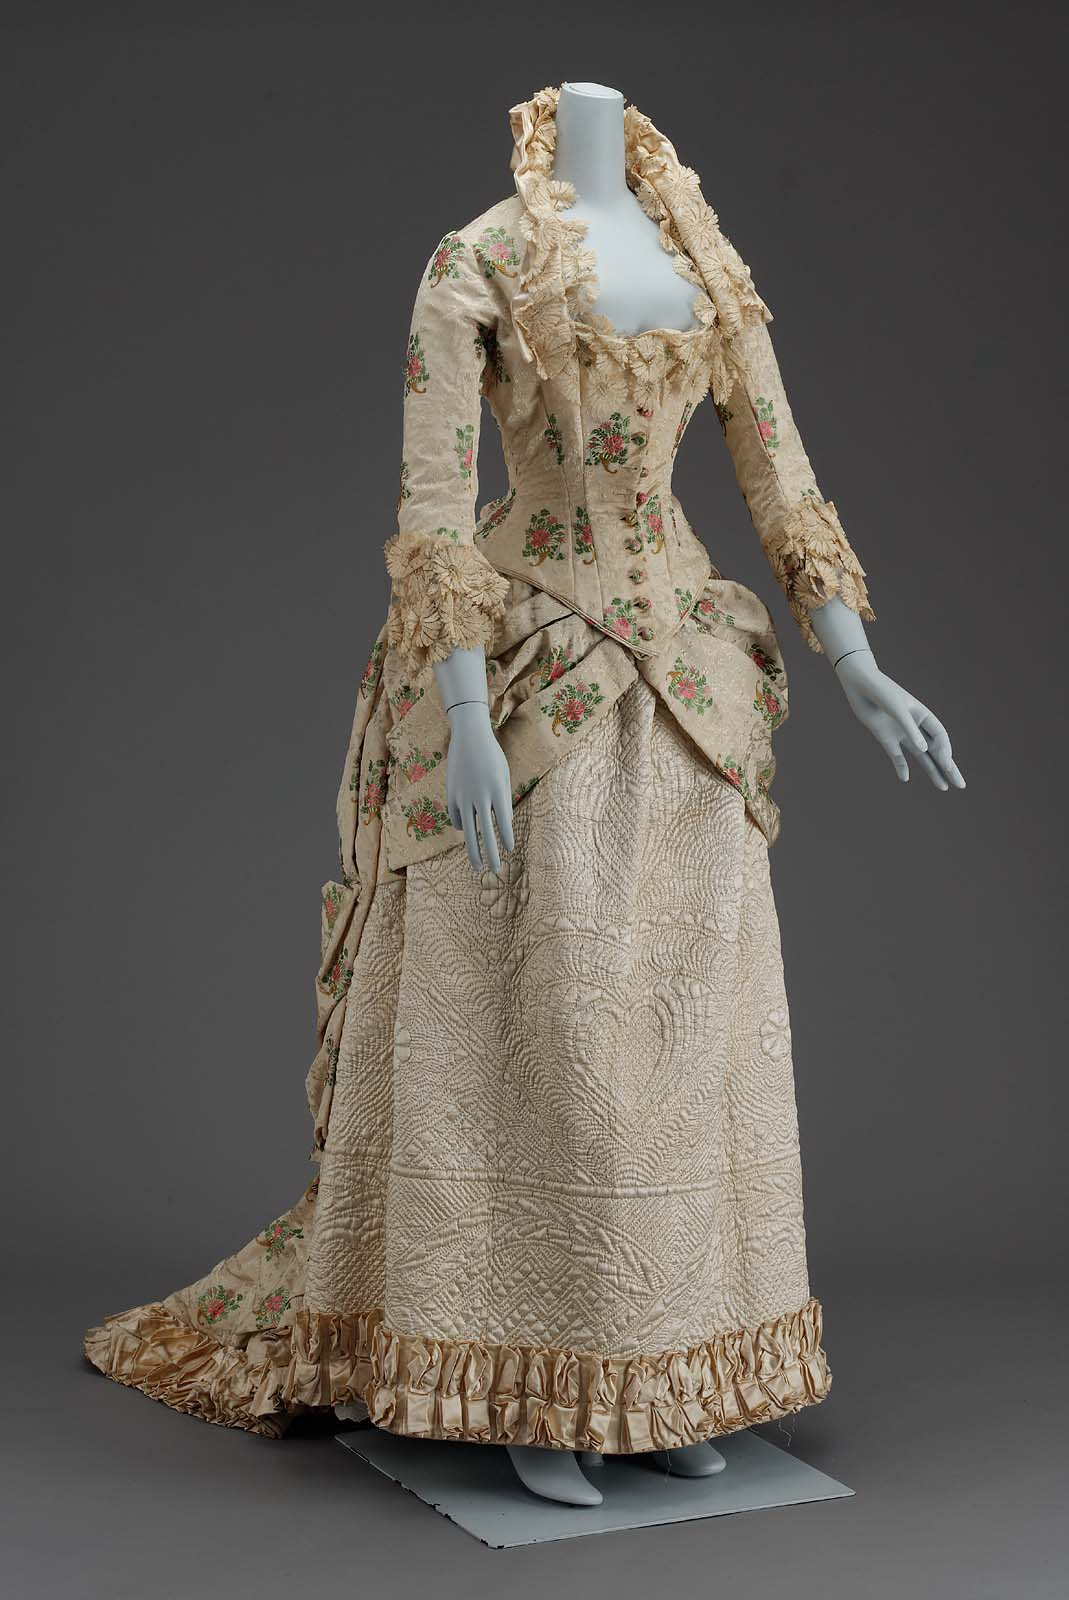 Woman's dress, American, 1880, silk with silk lace & cotton lining, MFA Boston, 53.90a-b